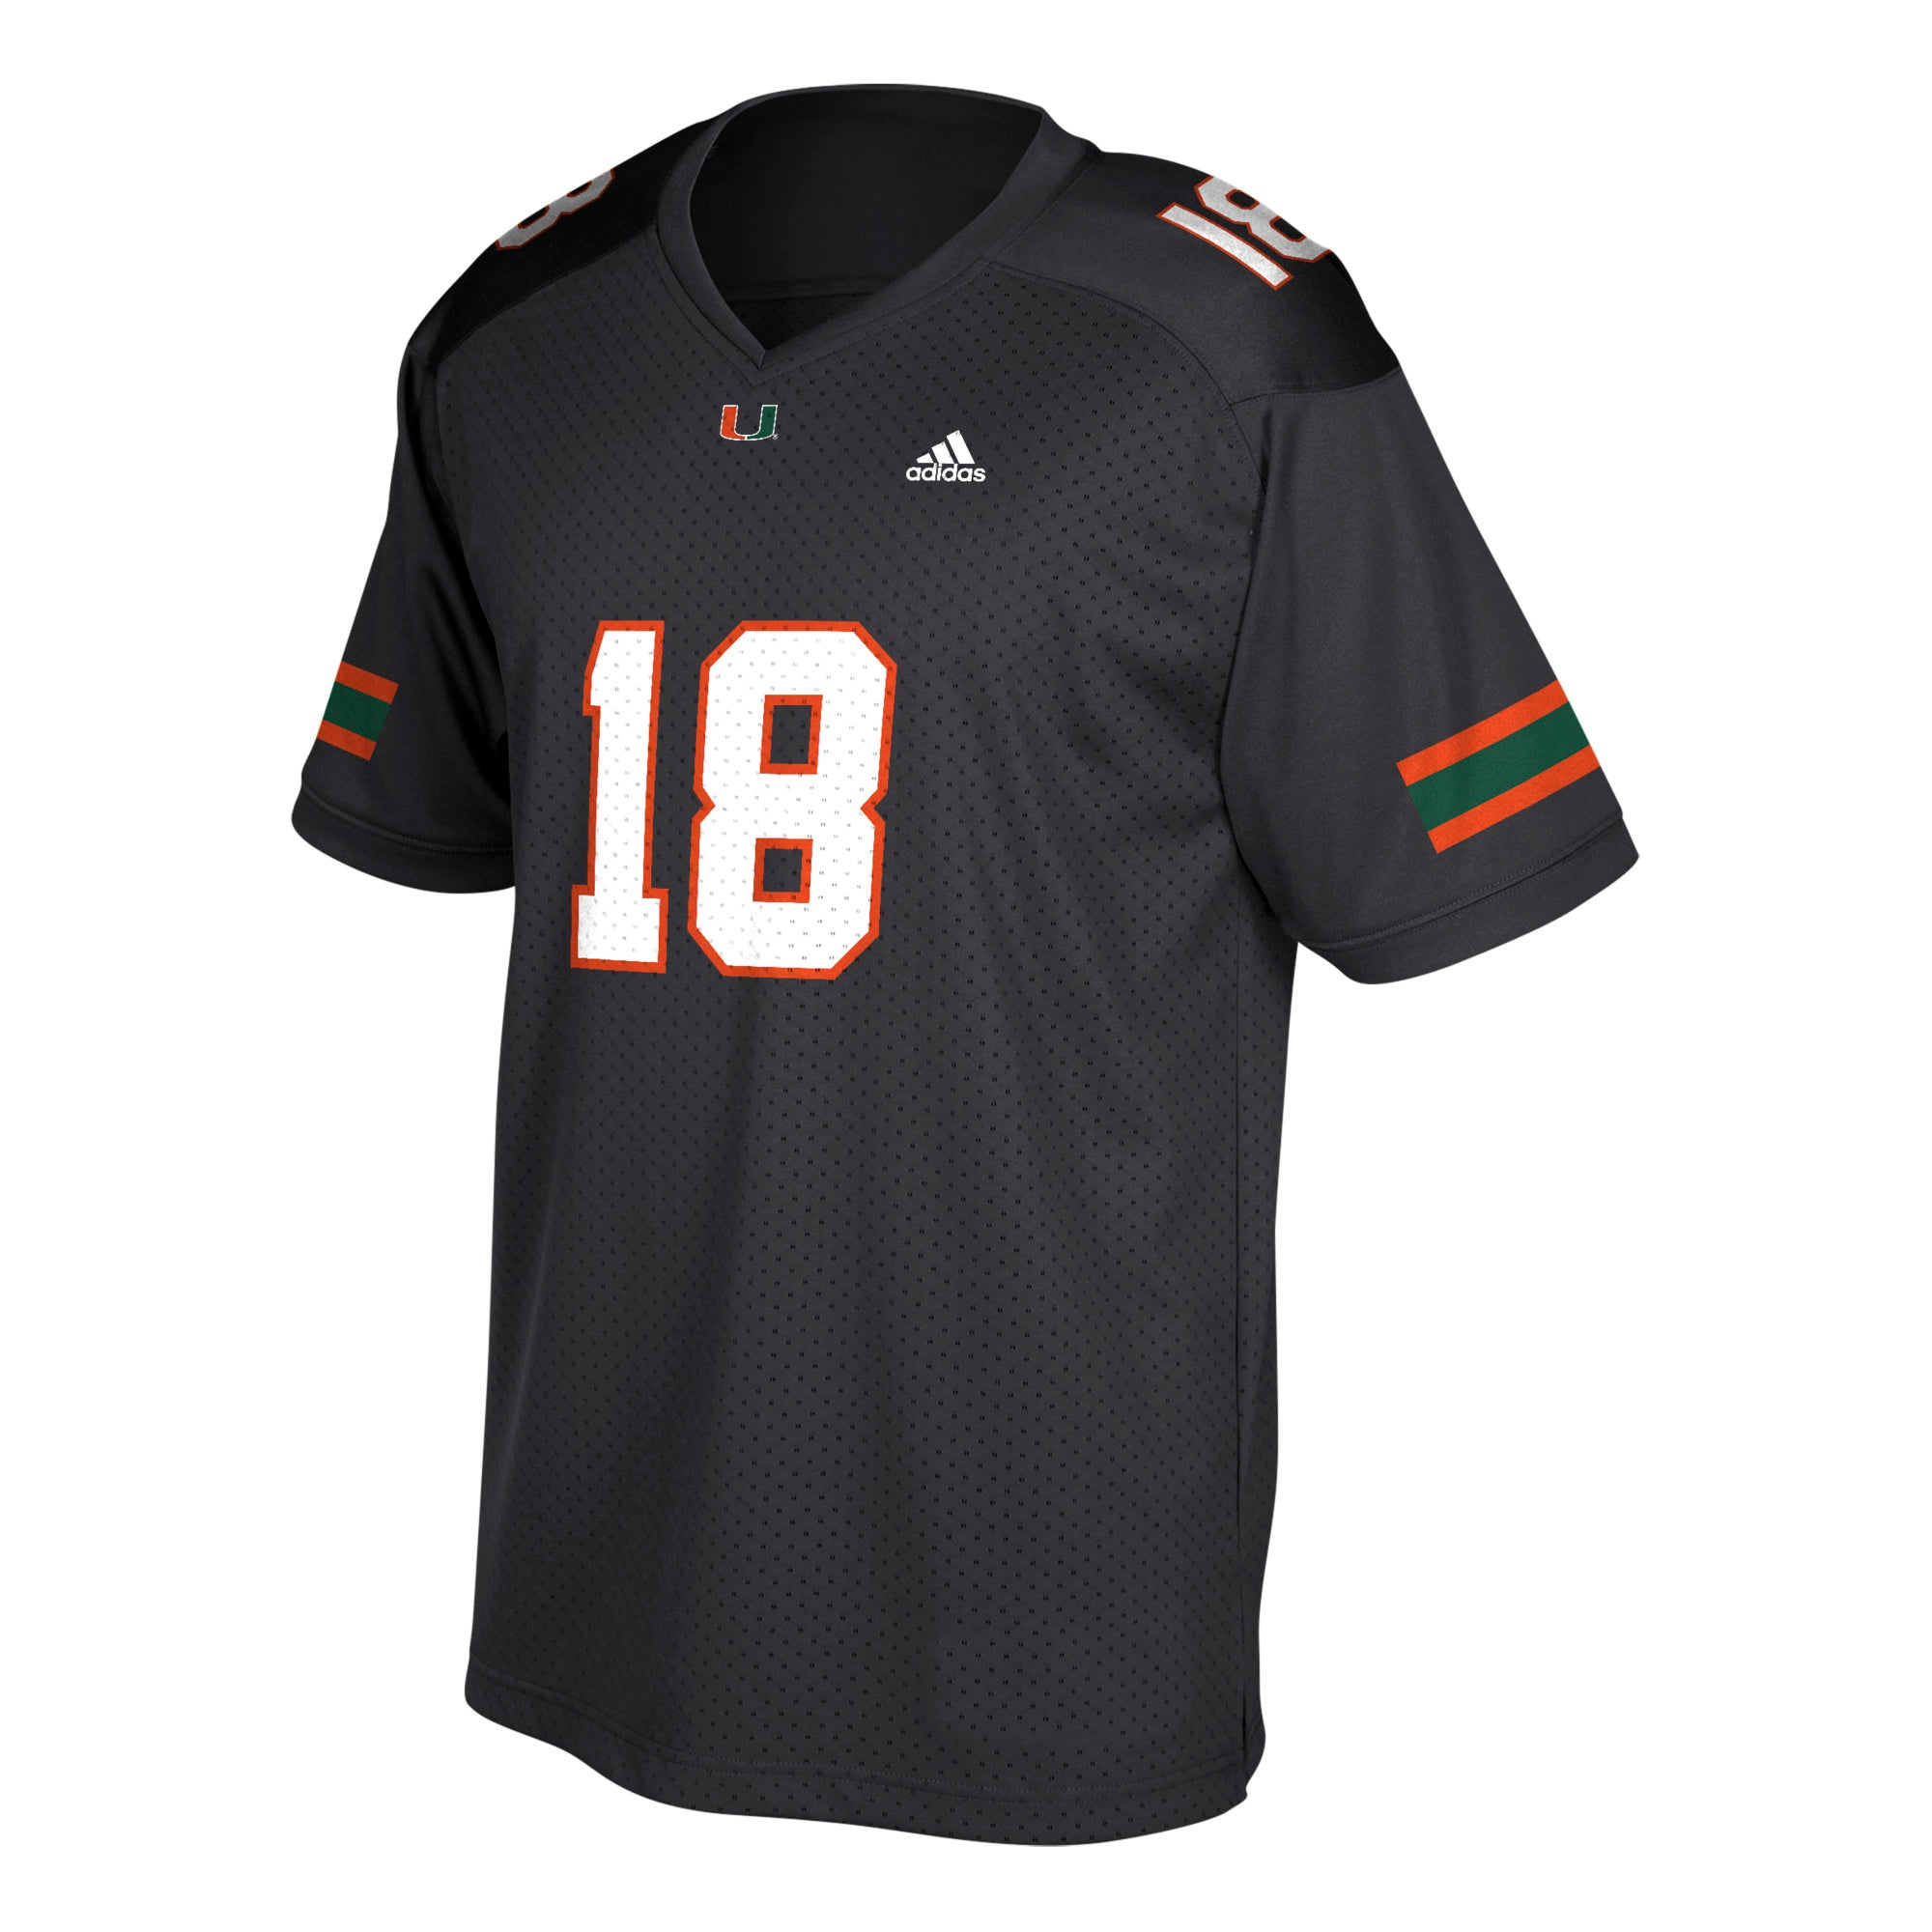 Miami Hurricanes adidas 2018 Youth Football Jersey Black